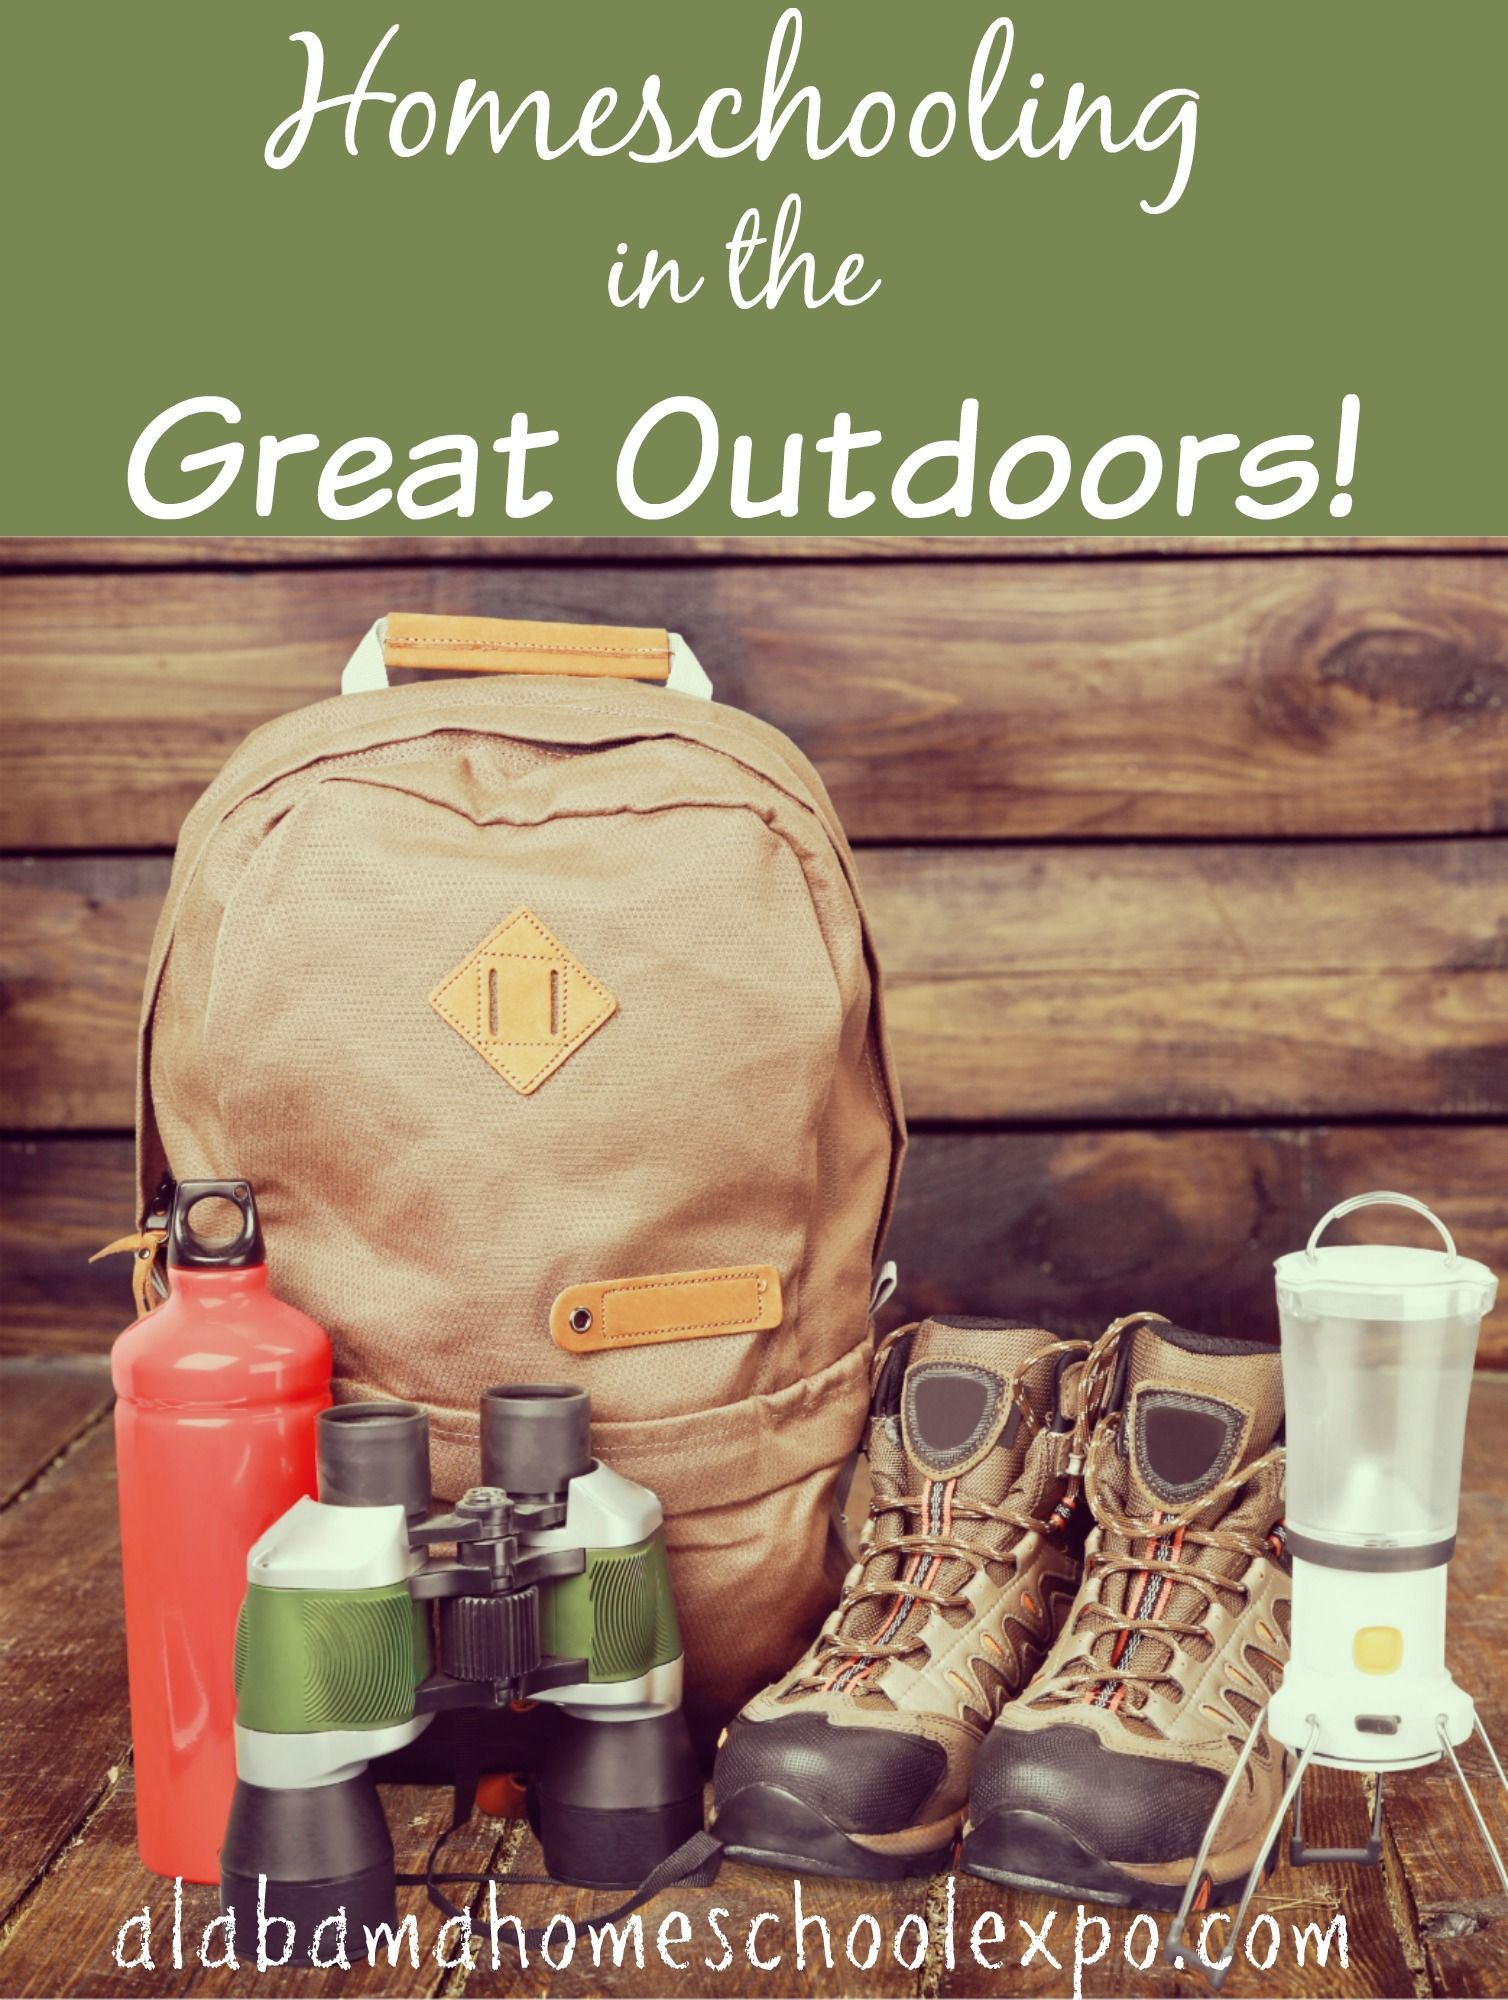 Have You Tried Homeschooling In The Great Outdoors